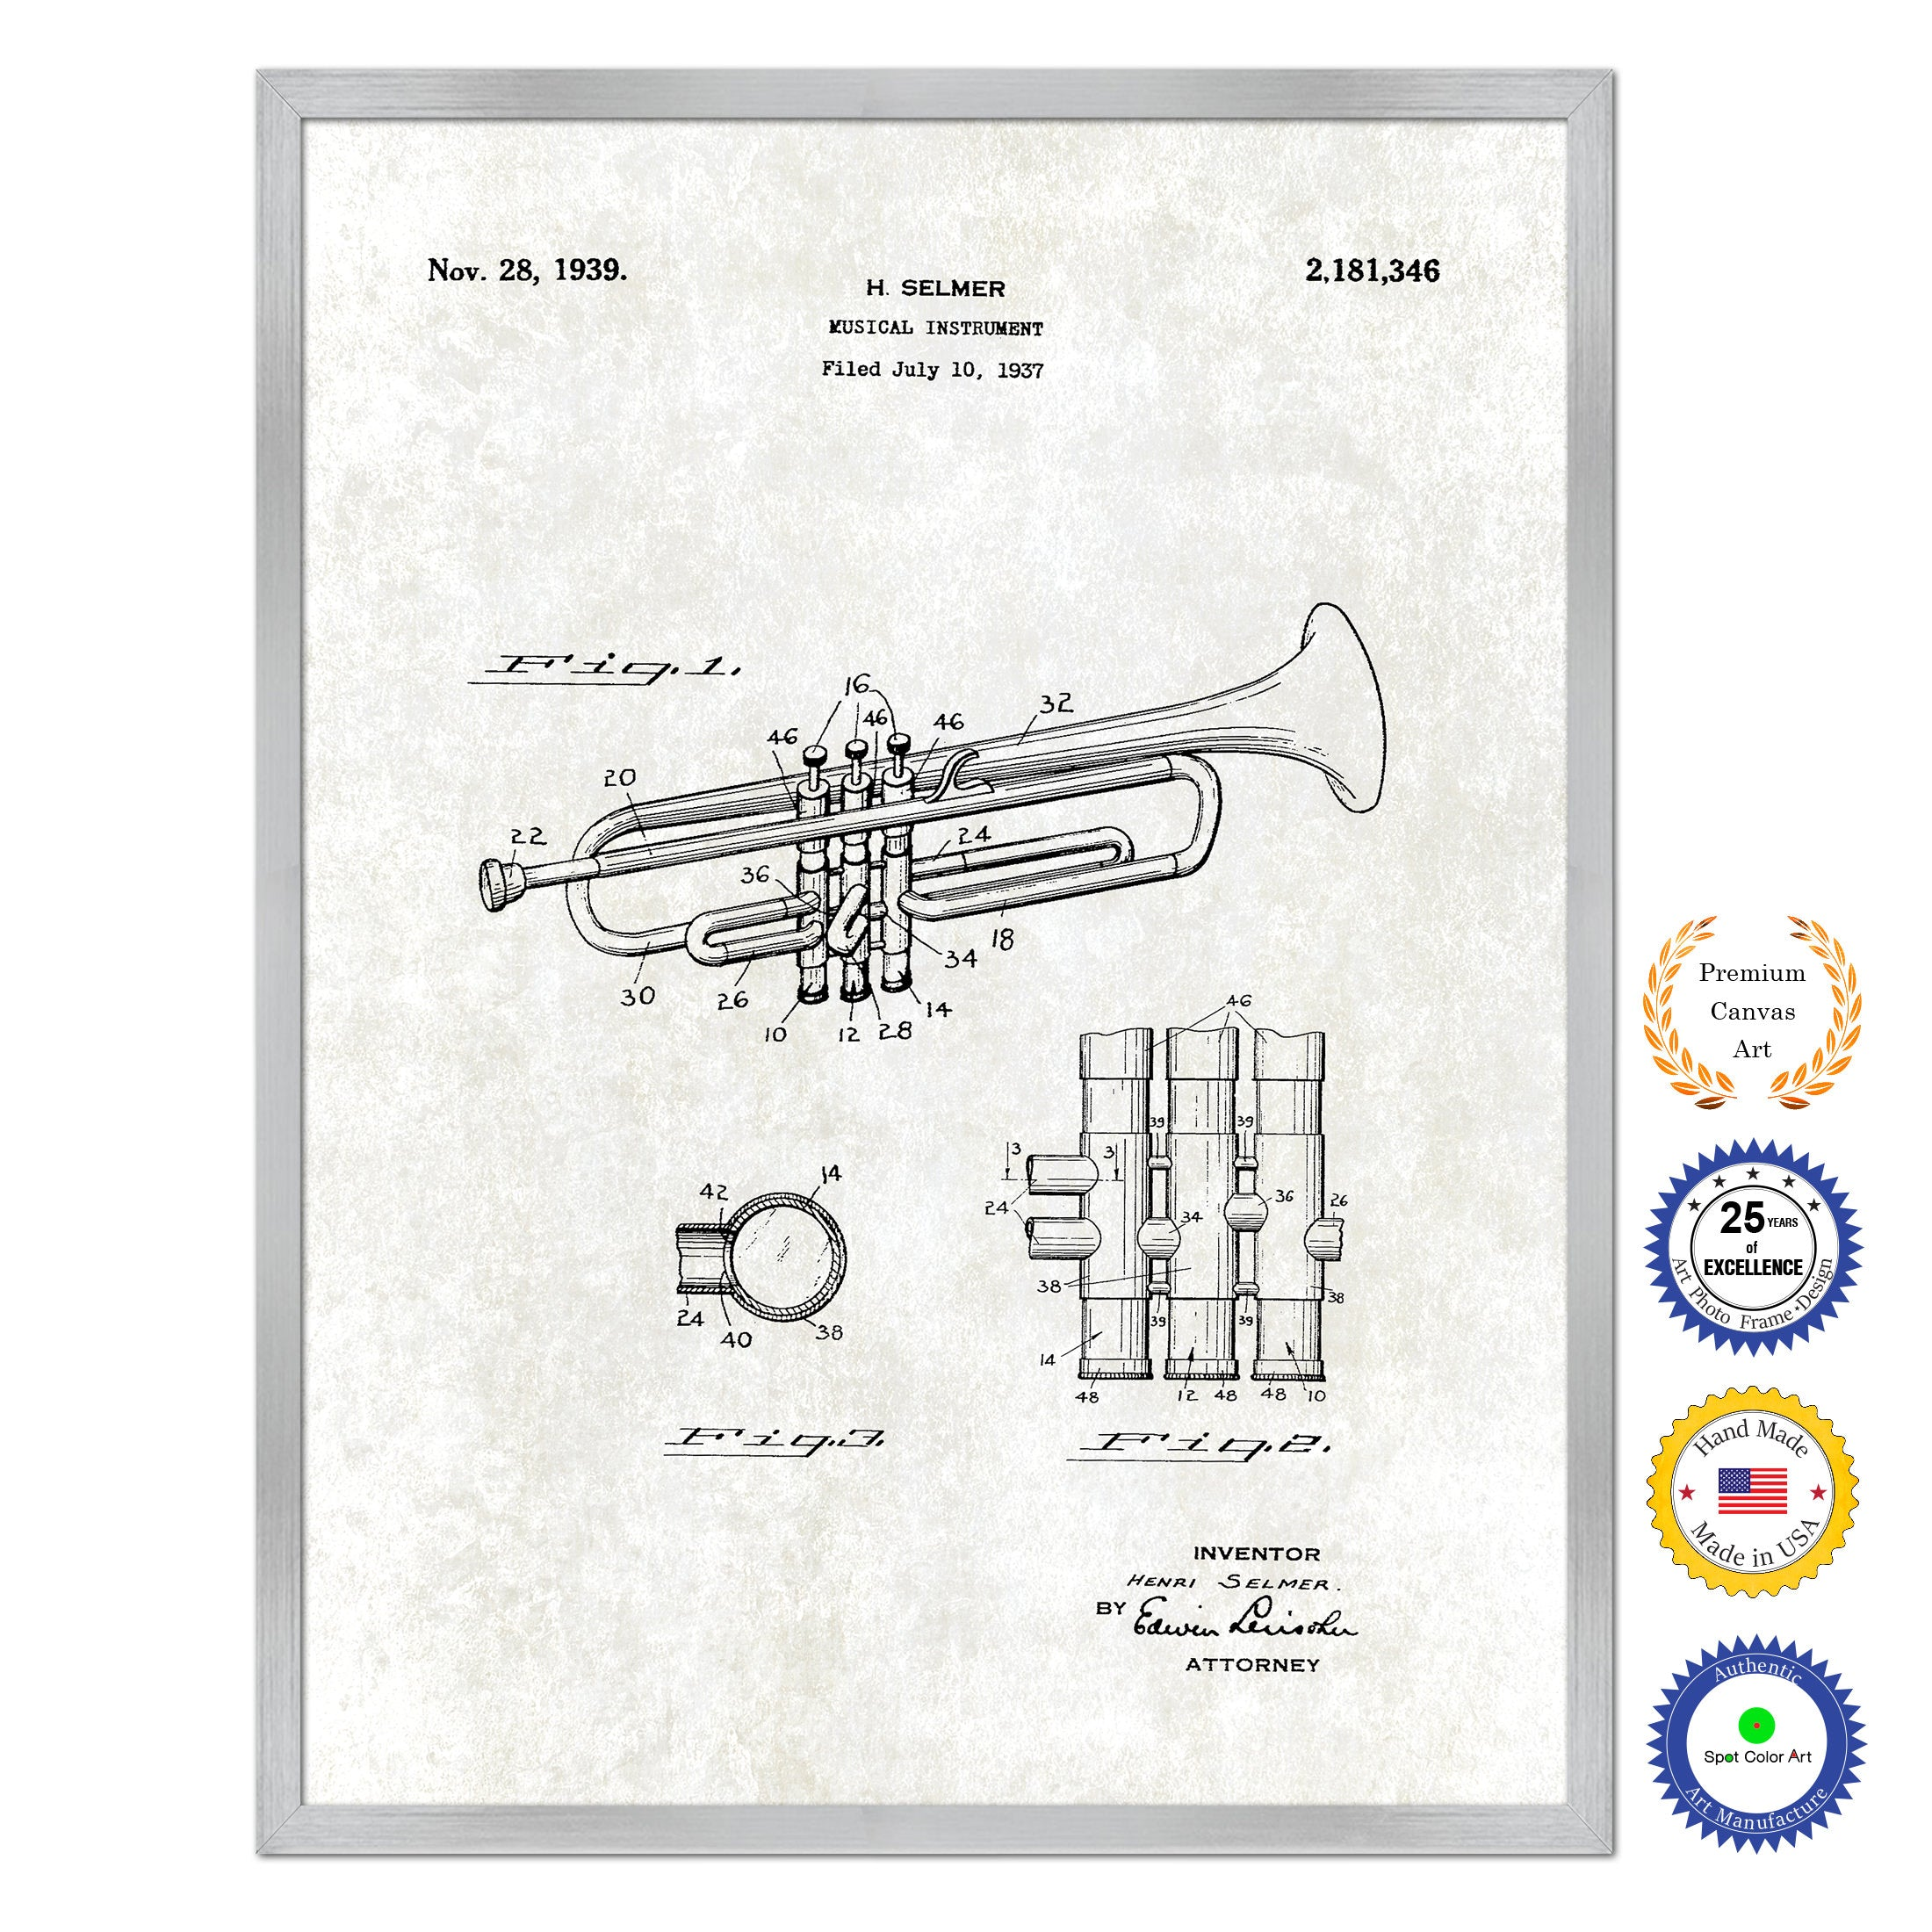 1939 Trumpet Musical Instrument Old Patent Art Print on Canvas Custom Framed Vintage Home Decor Wall Decoration Great for Gifts